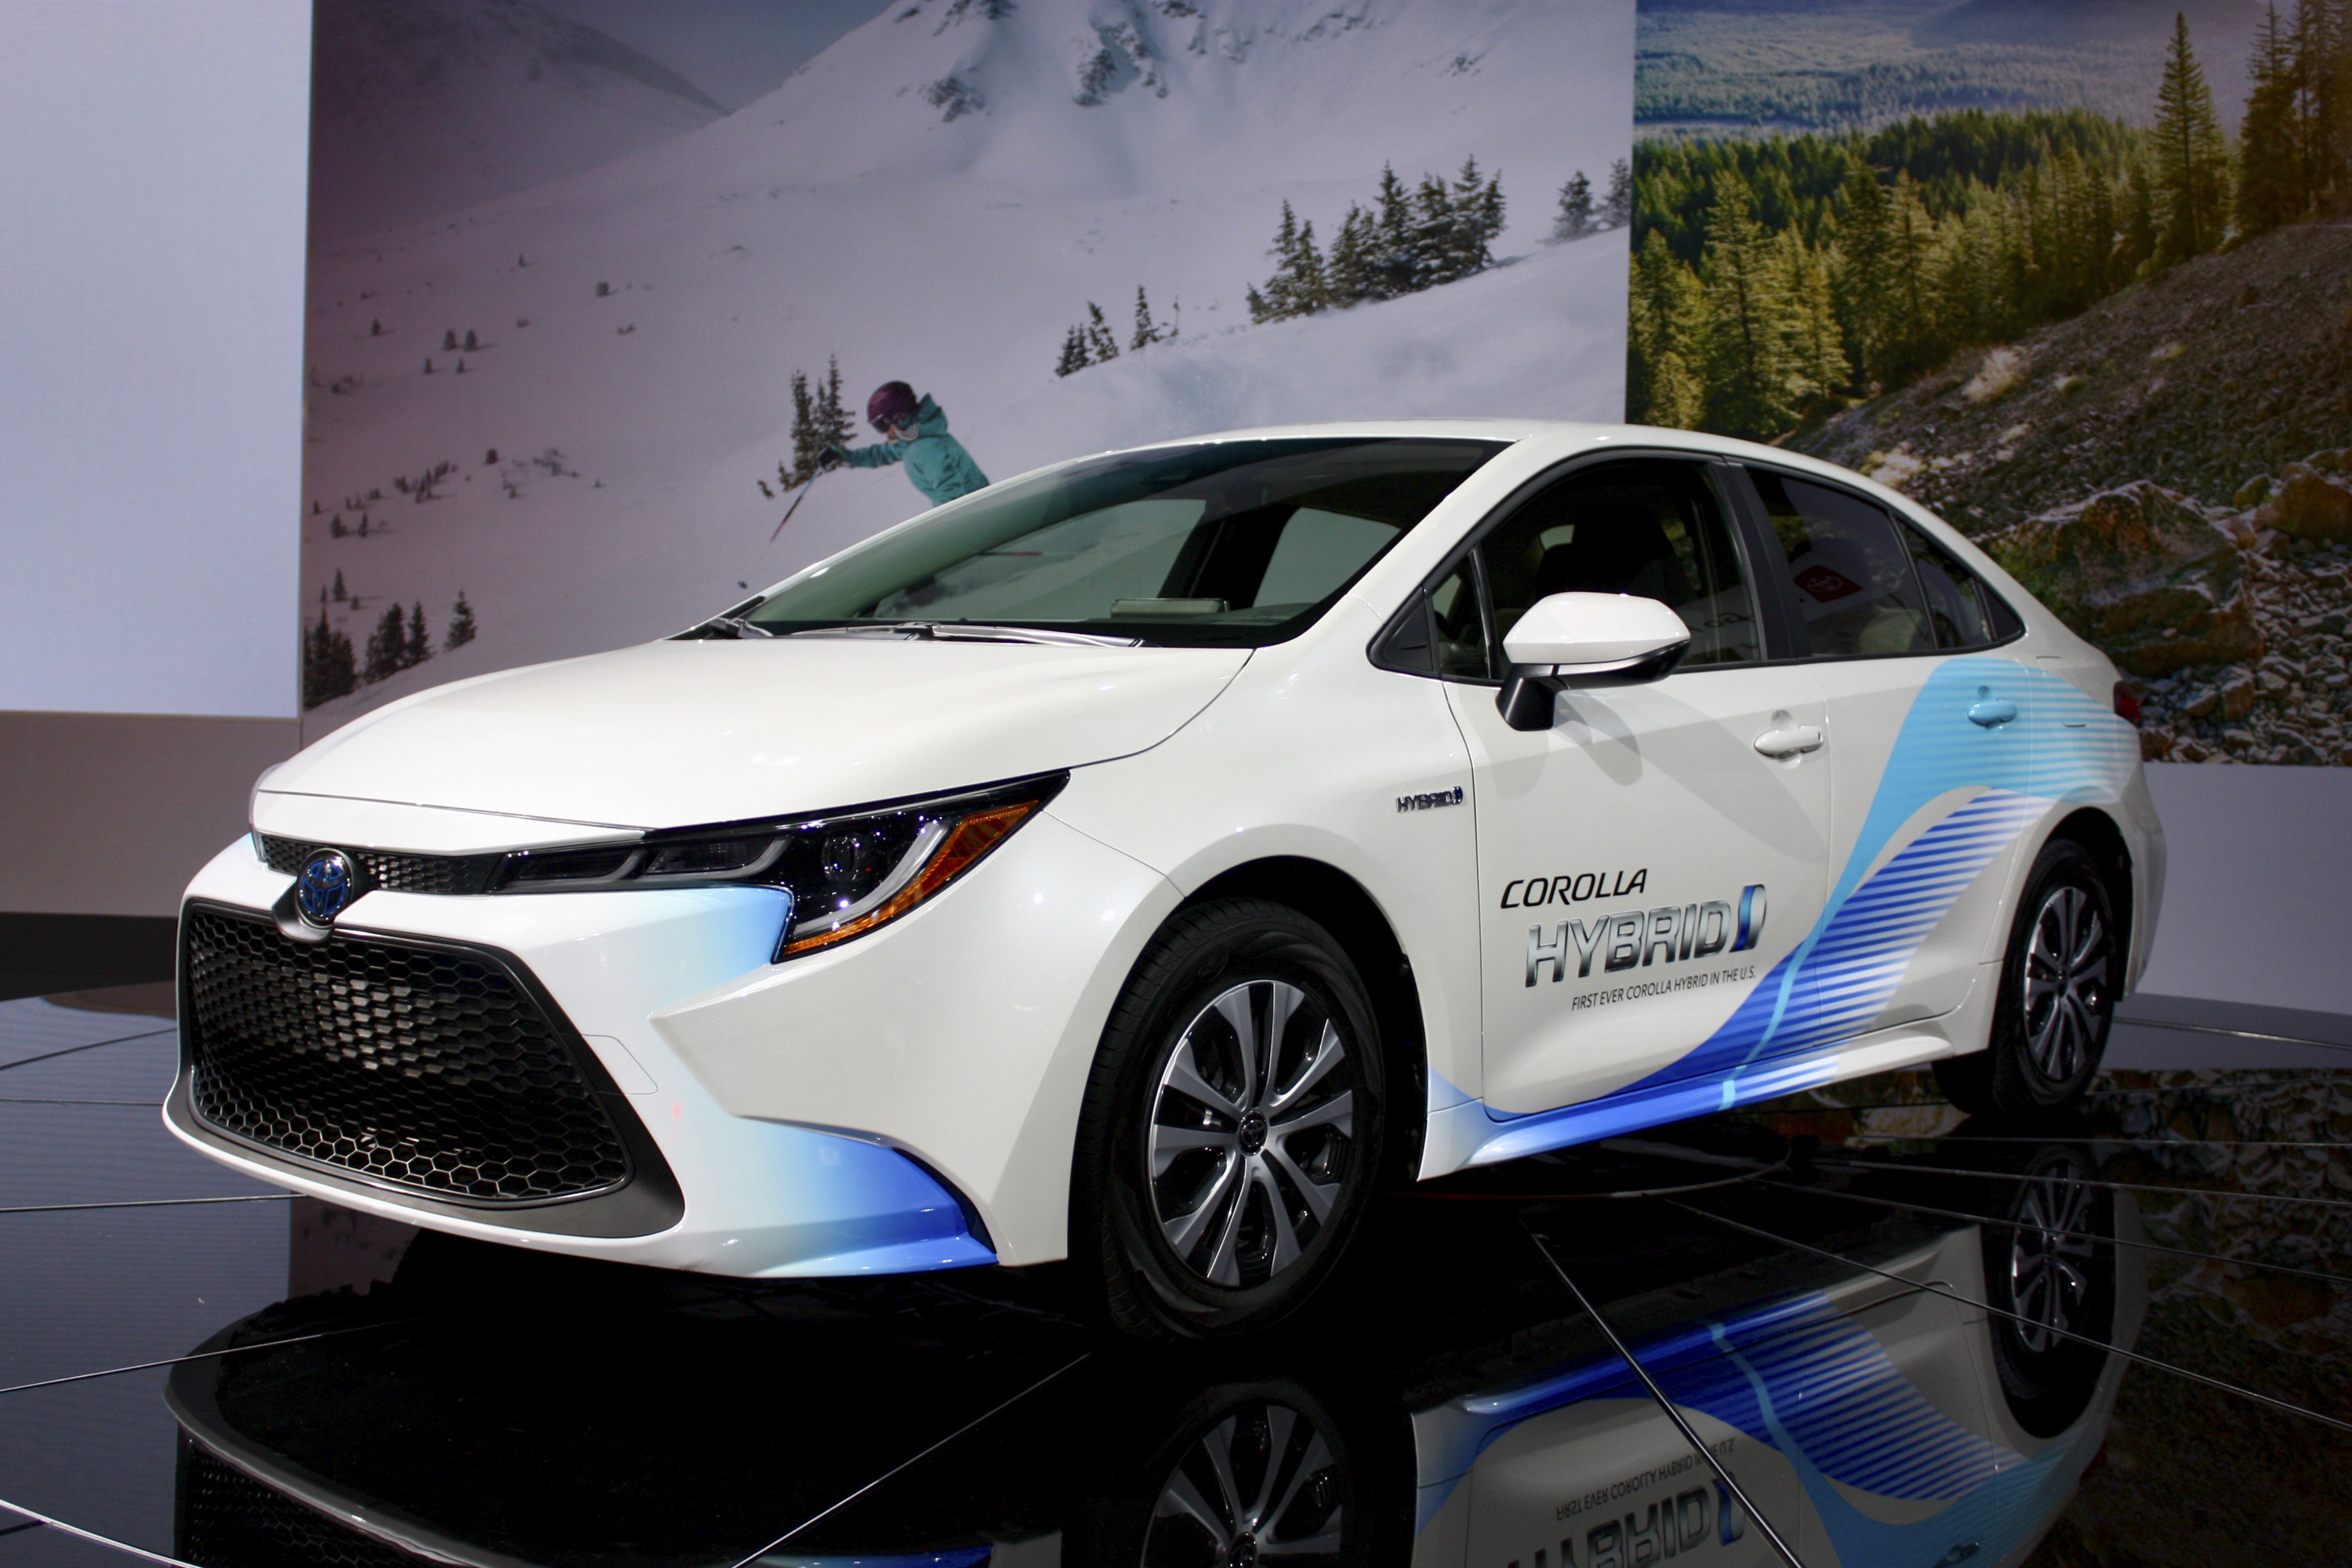 The 2020 Toyota Corolla Hybrid Gives You Prius Fuel Economy